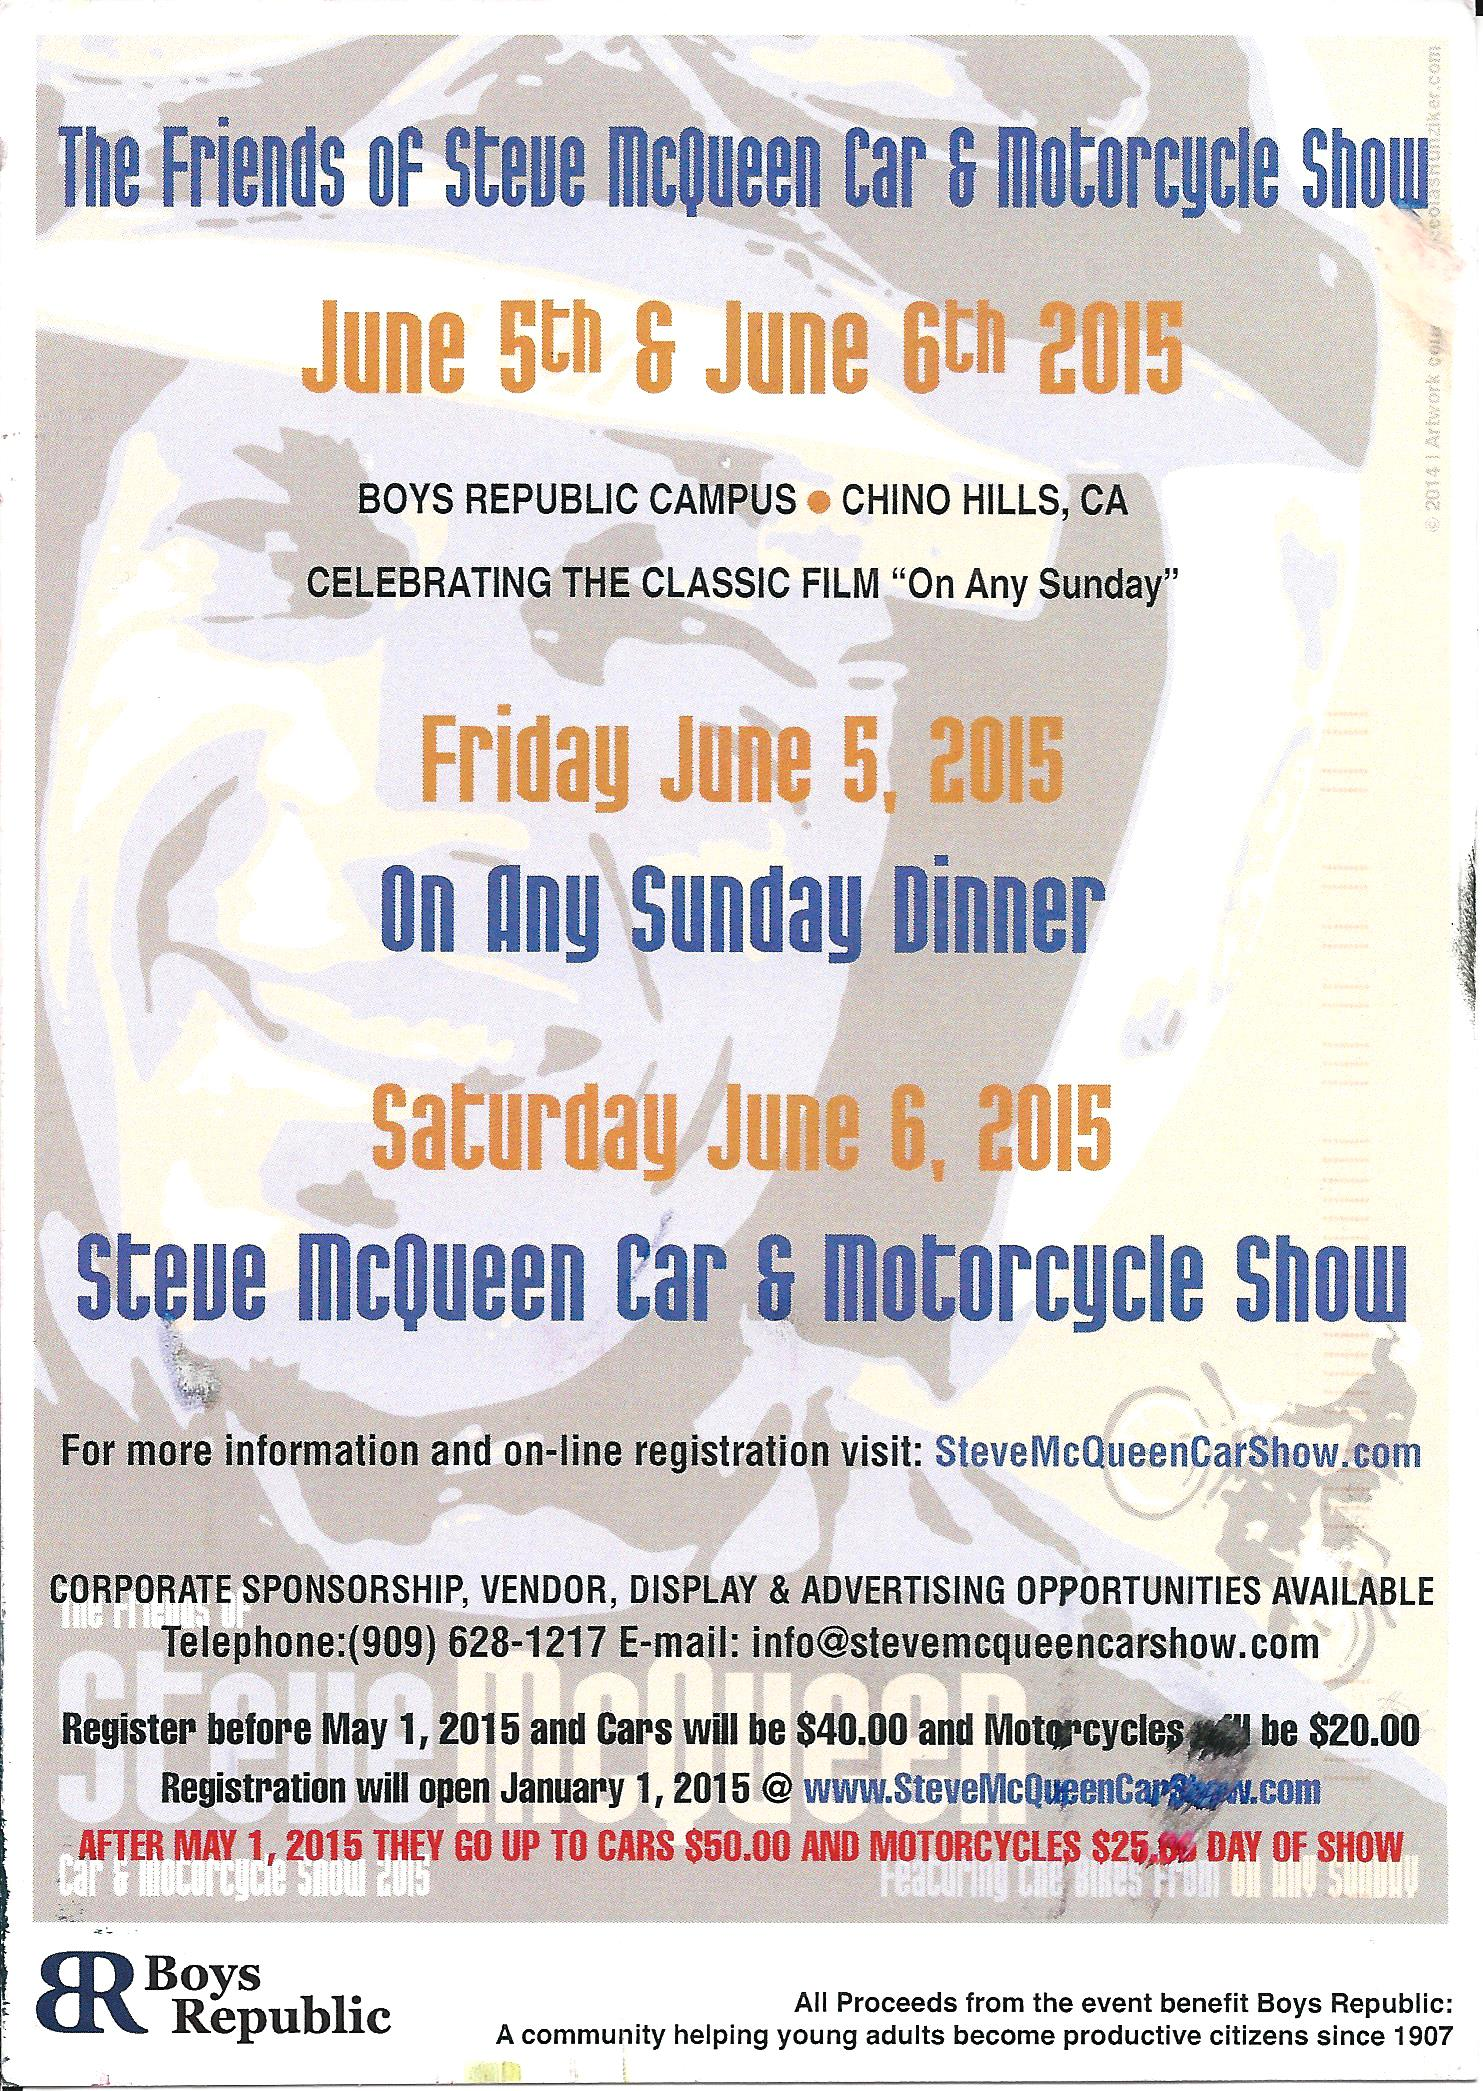 Car Show Calendar alert: Friends of Steve McQueen Car Show weekend is June 5/6